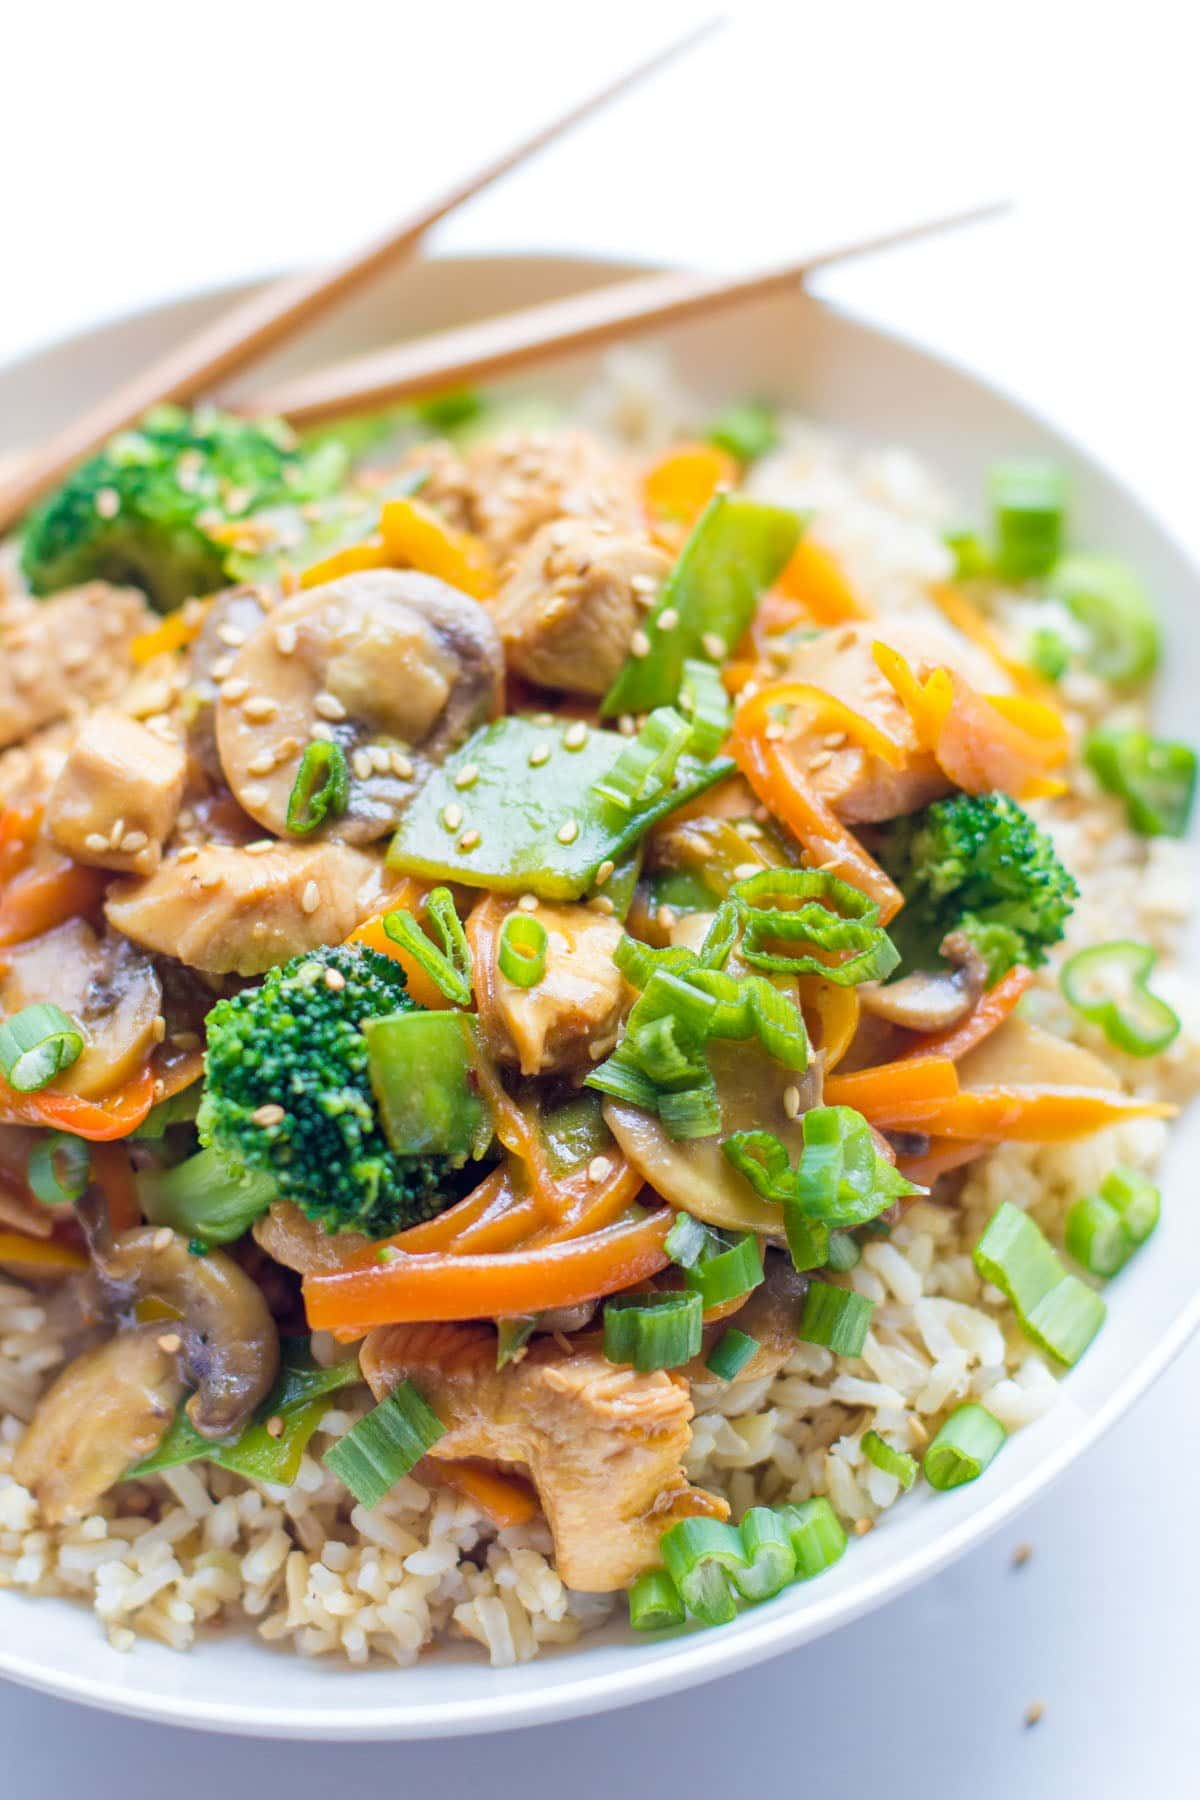 Healthy Chicken Stir Fry on top of brown rice in a white bowl on a white background